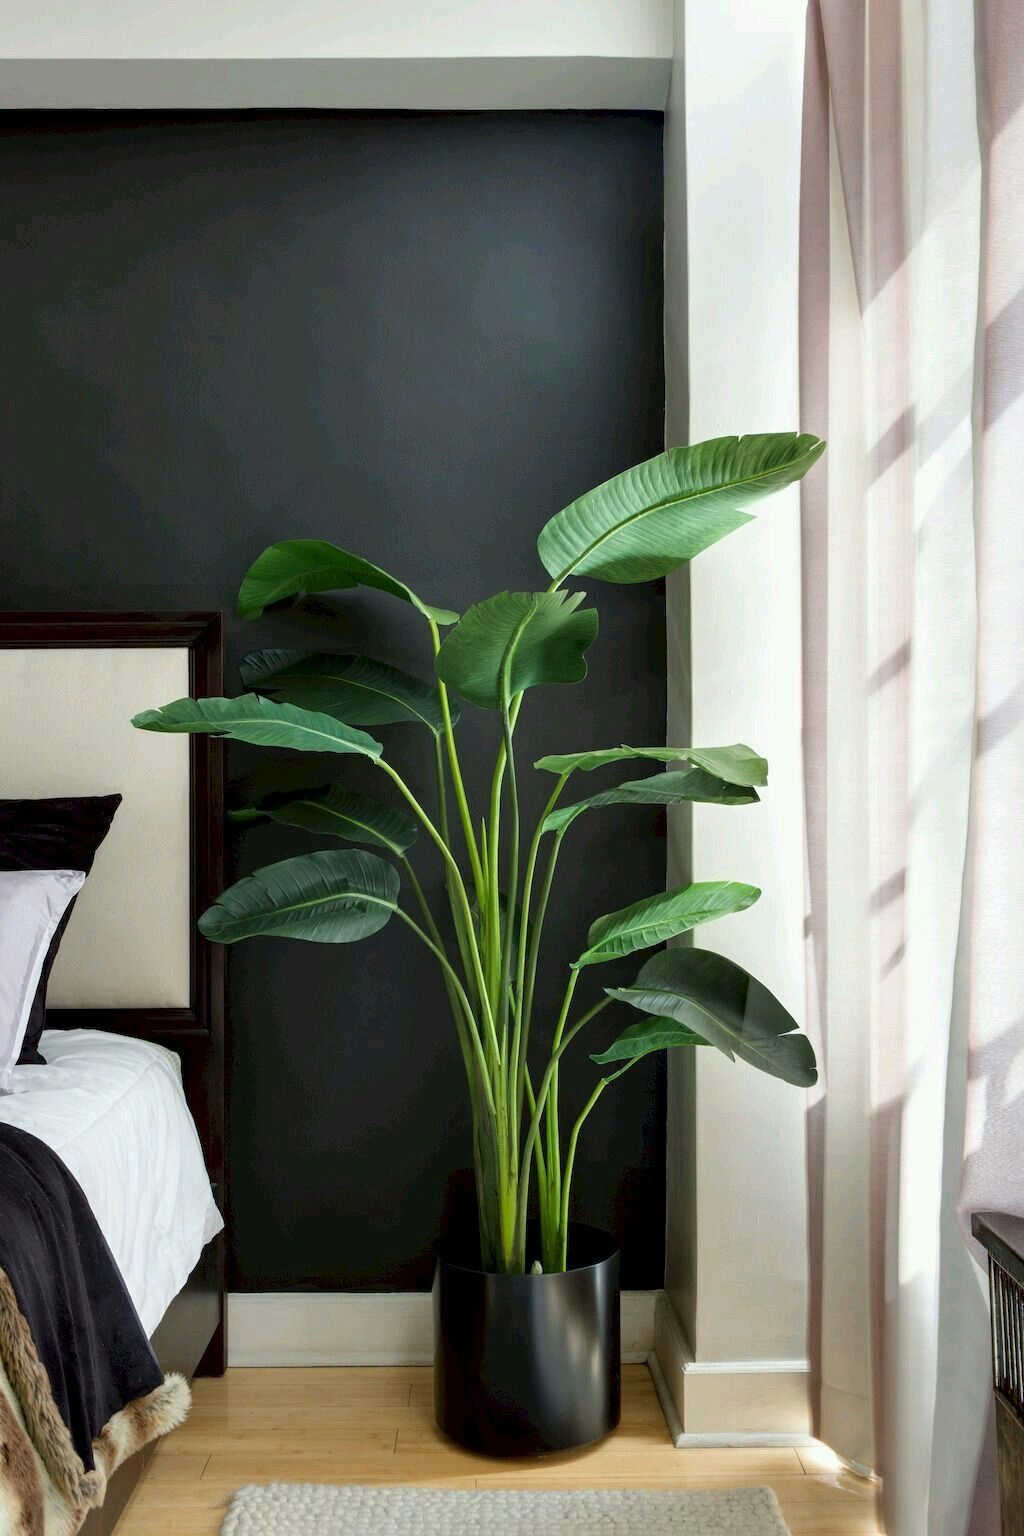 Pin By Rosalie James On Bohooo Bedroom Plants House Plants Indoor Birds Of Paradise Plant